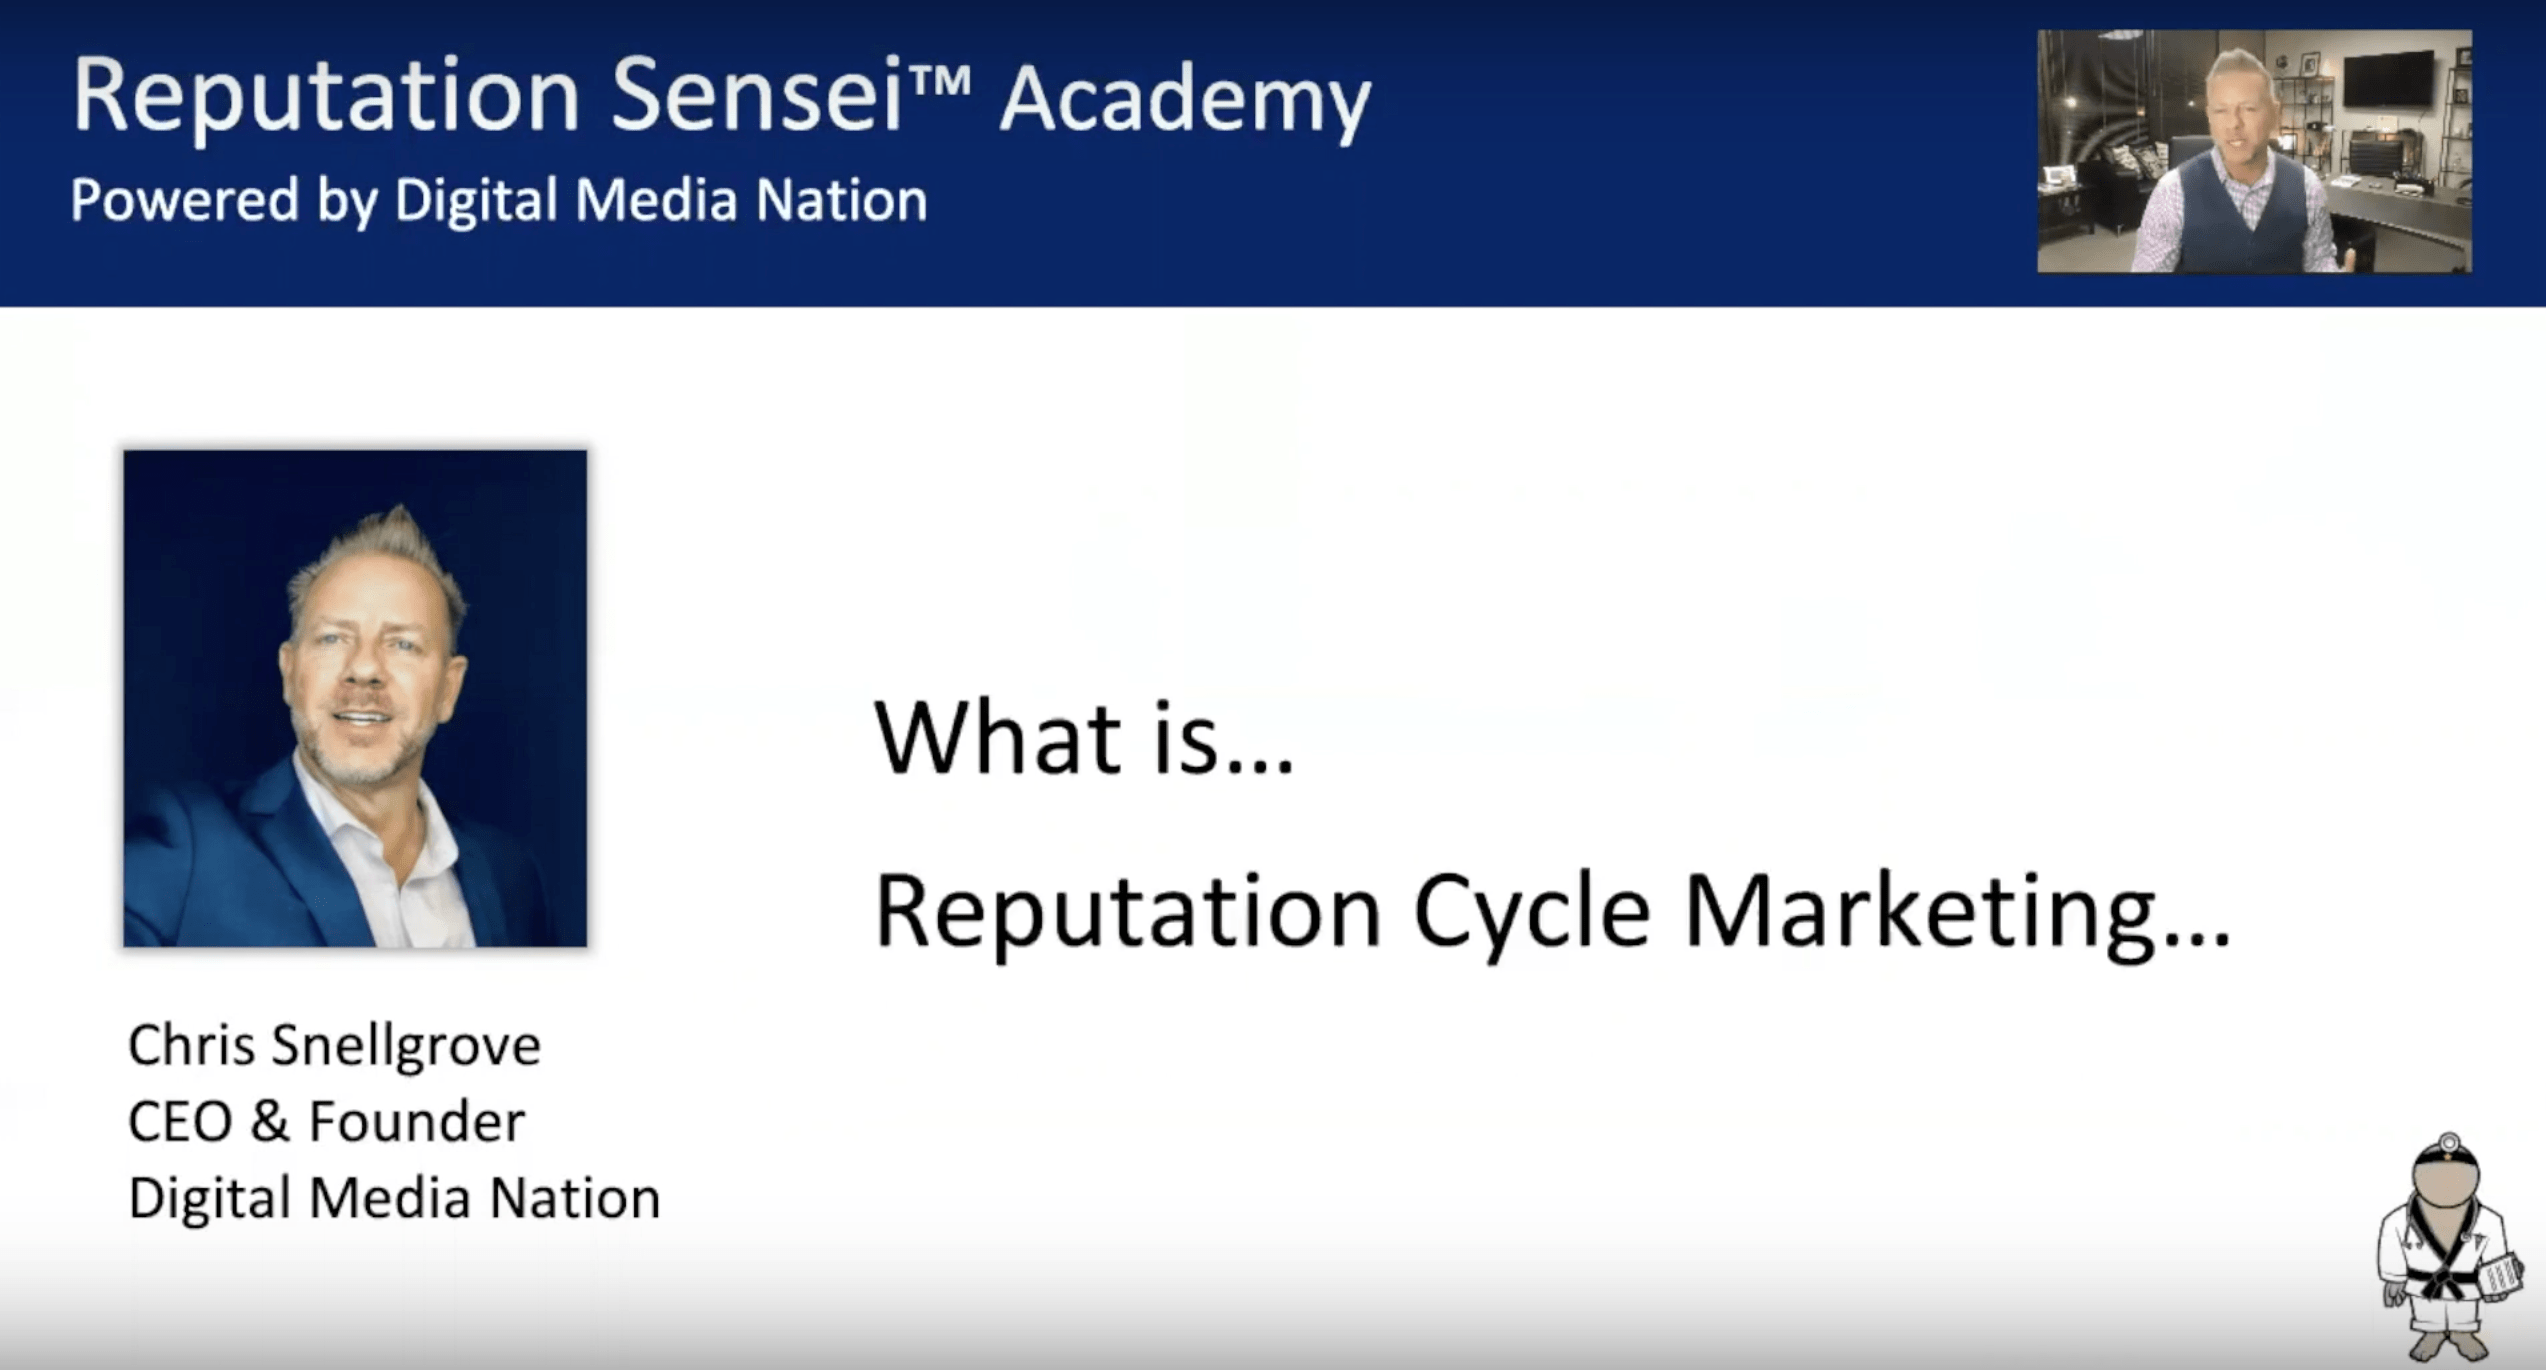 Reputation Cycle Marketing Defined - Blog Screen Shot